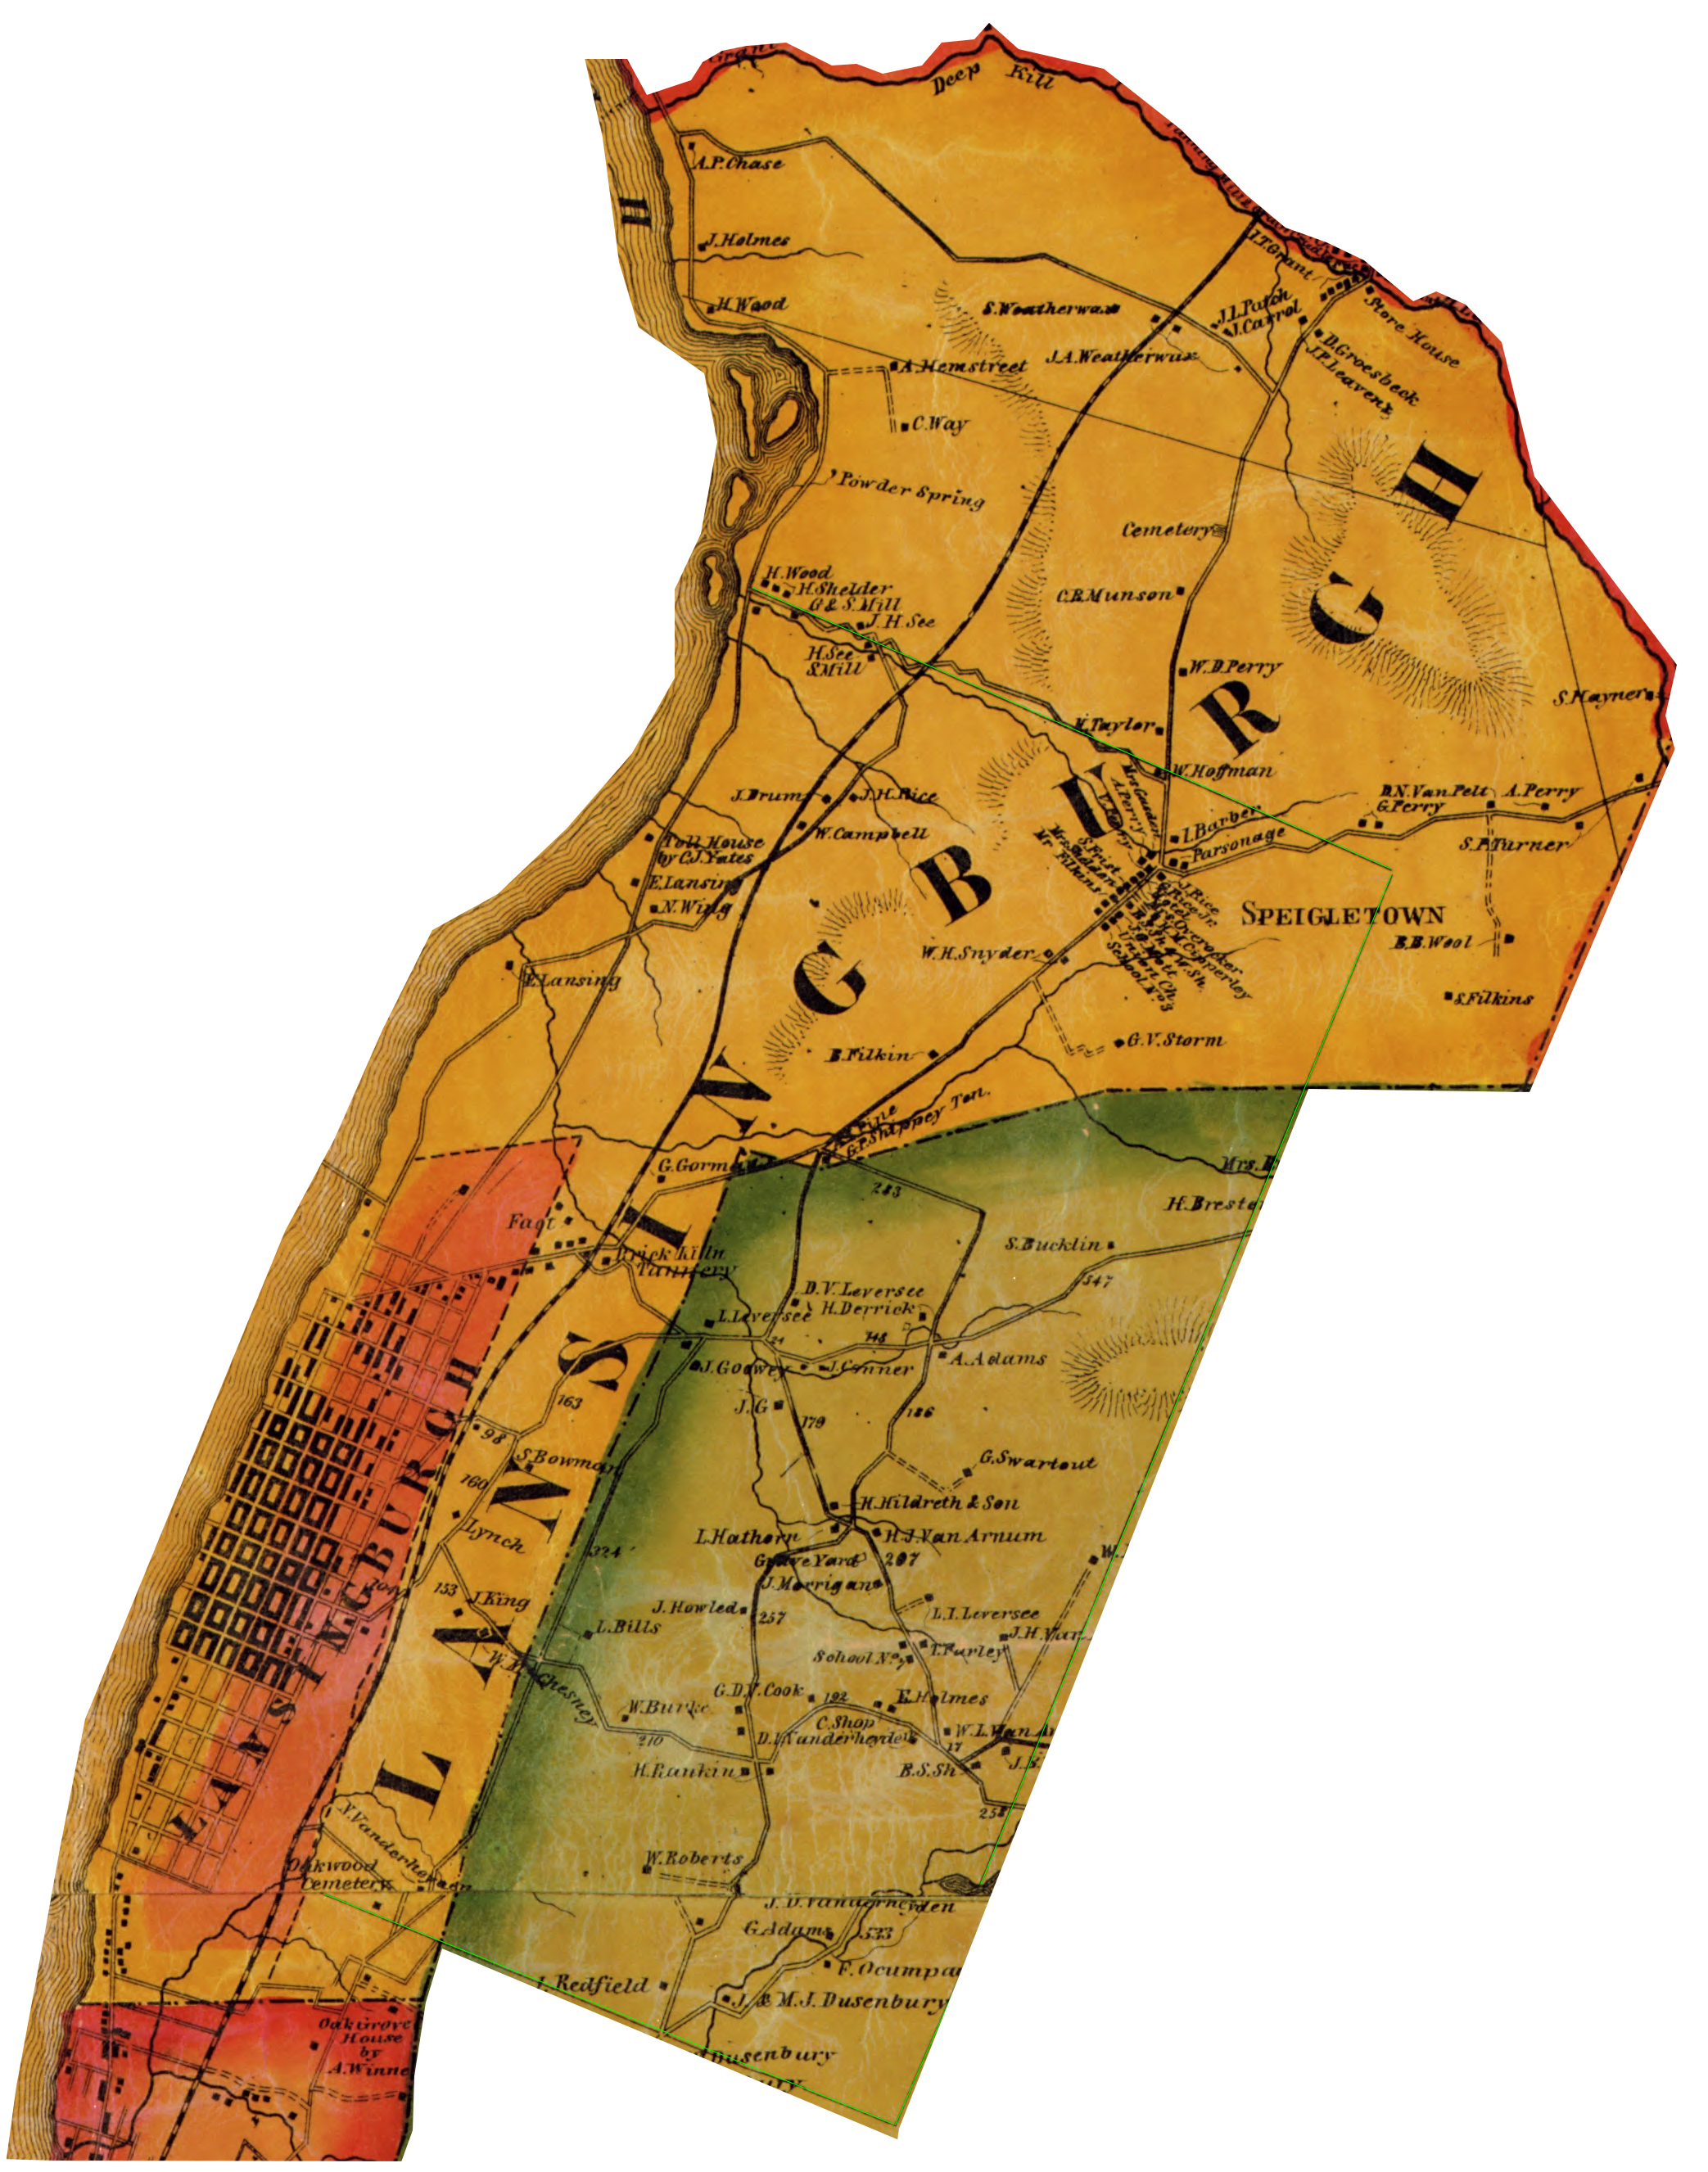 Image of Town of Lansingburgh with Batestown area (red at bottom) and remainder of Stone Arabia (green) cropped from Map of Rensselaer Co. New York by D. J. Lake & S. N. Beers, 1861. http://www.loc.gov/item/2009583522